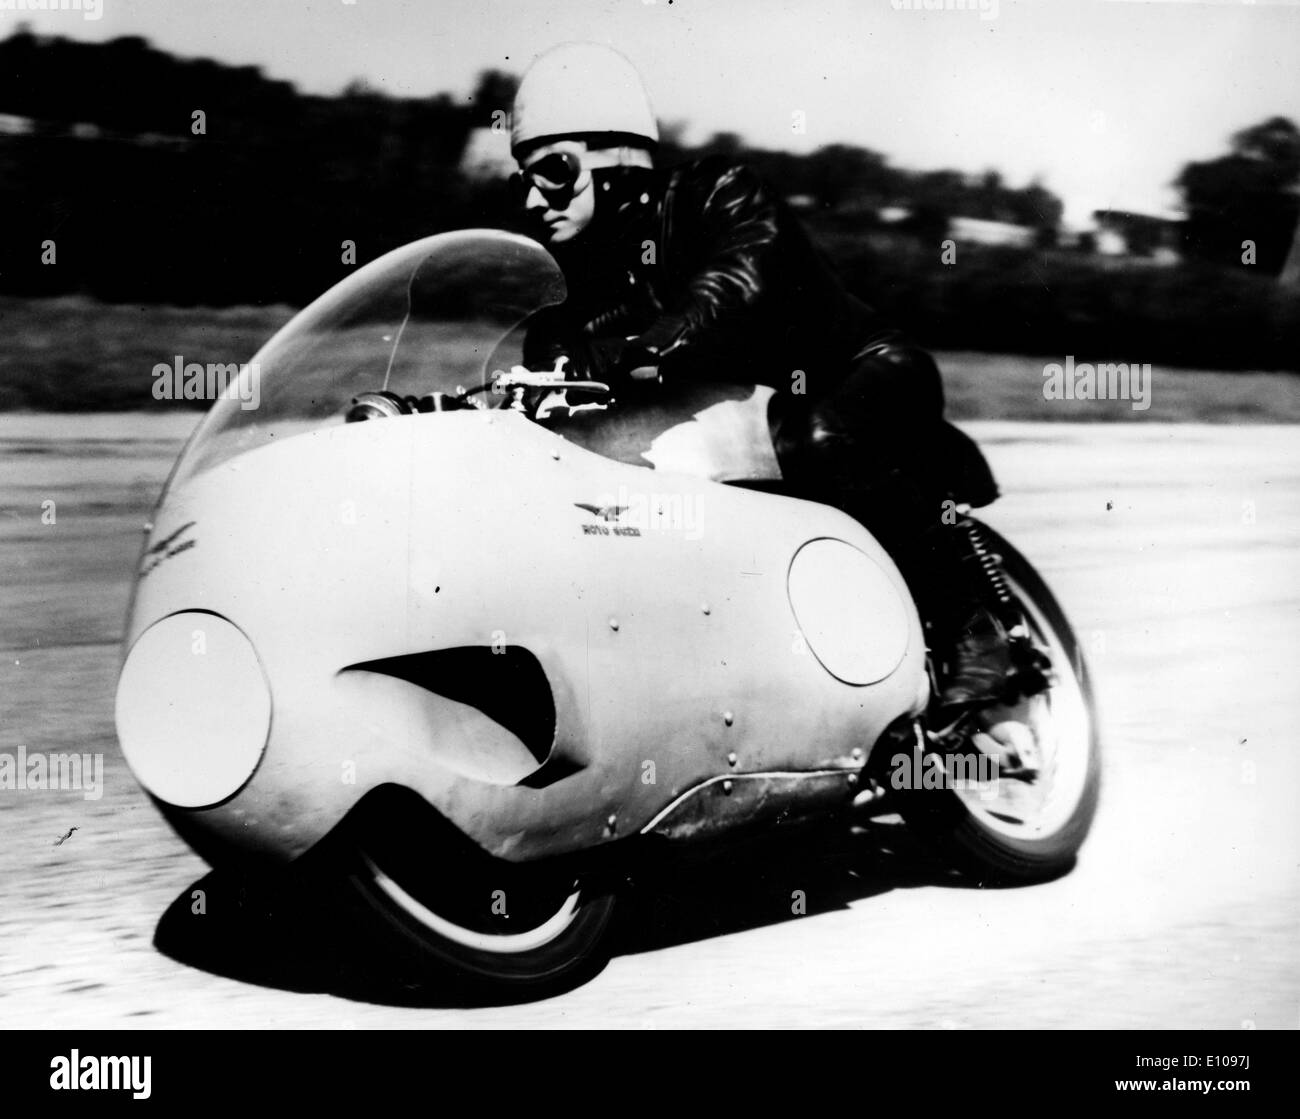 KEITH CAMPBELL pictured on a Moto Guzzi motorcycle. - Stock Image